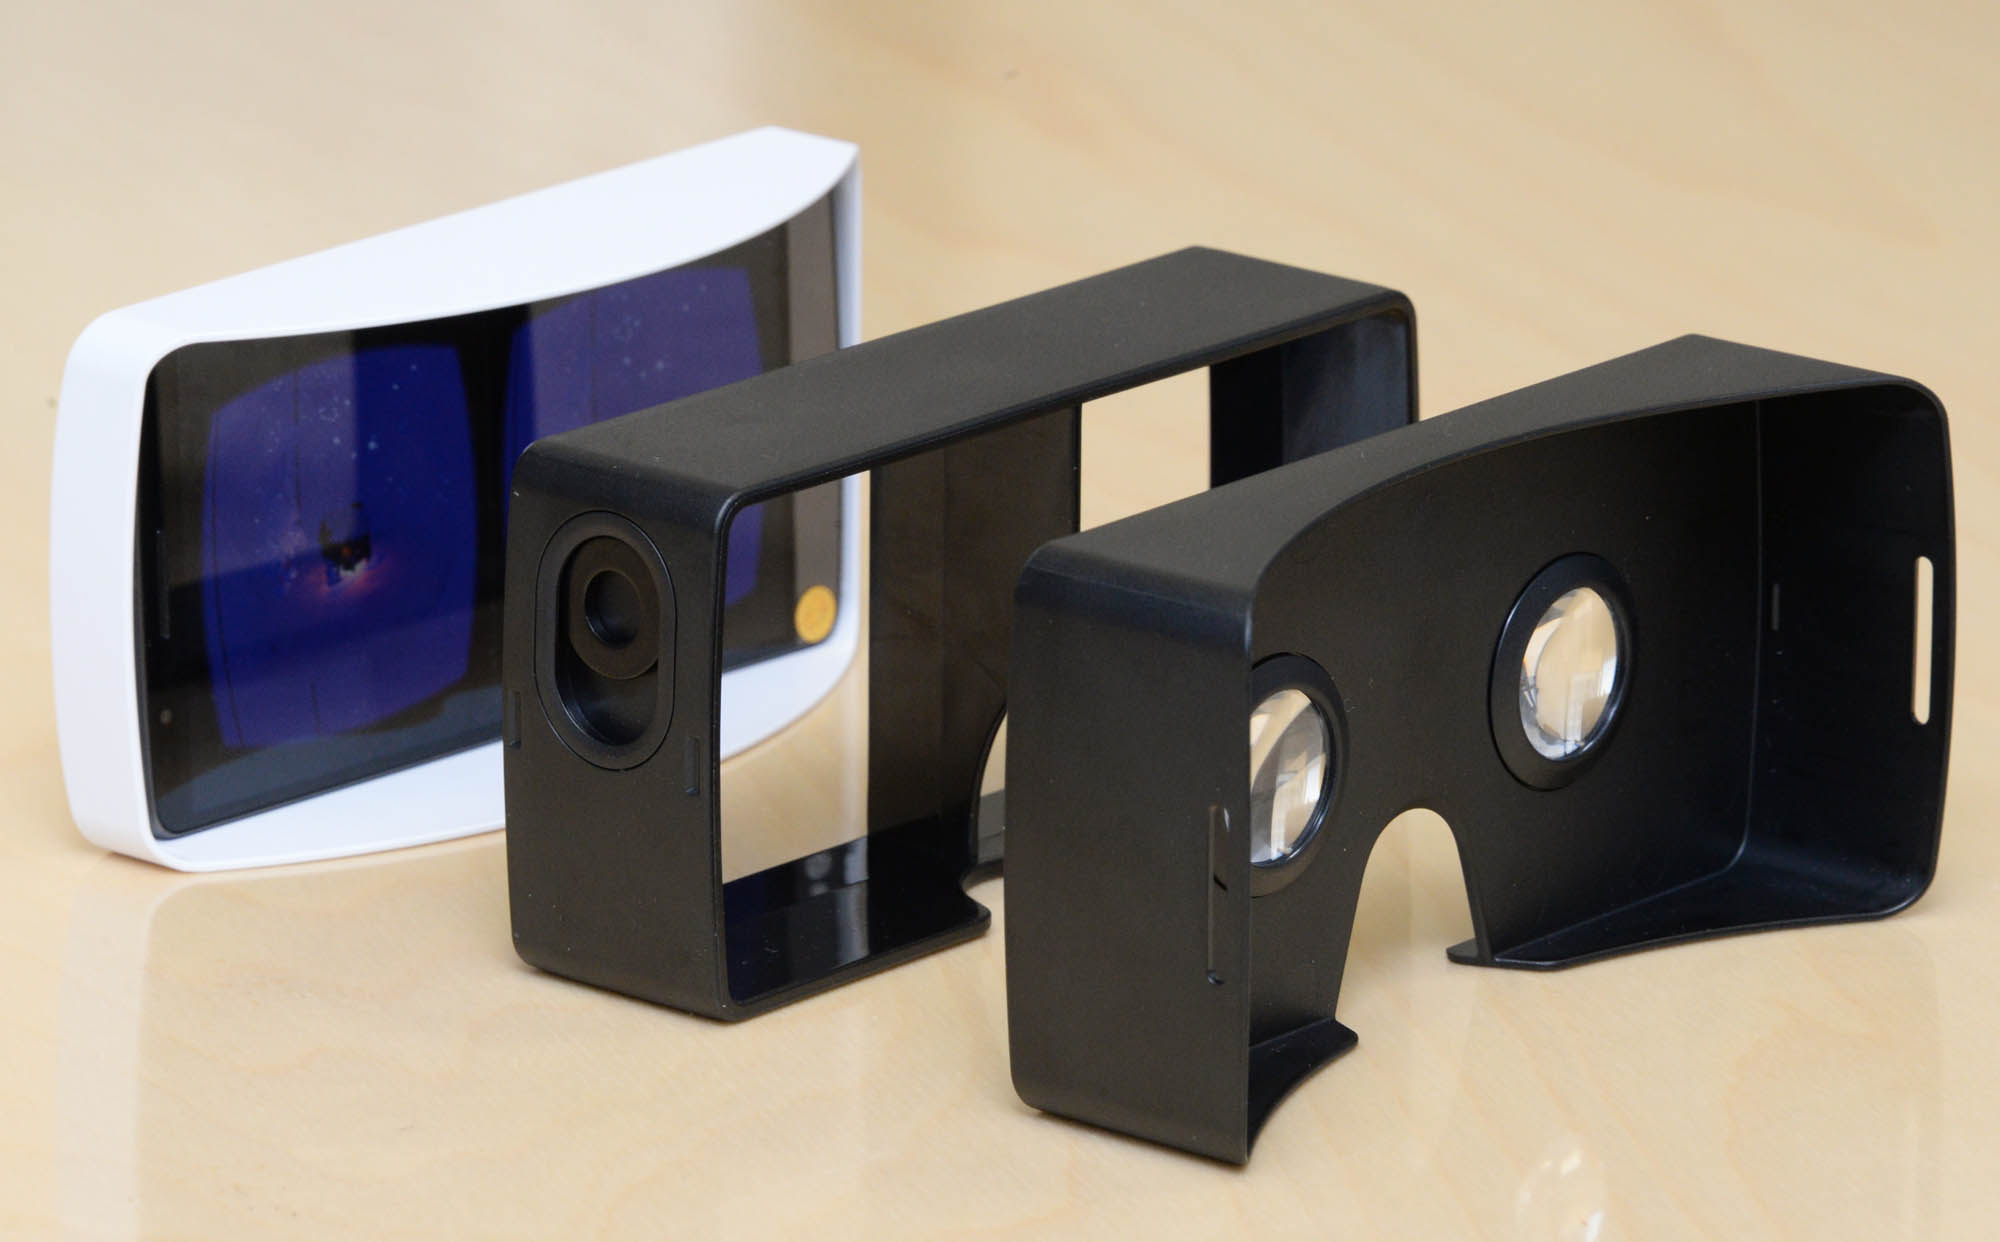 LG G3 AND GOOGLE CARDBOARD - VIRTUAL REALITY - IMAGE 3